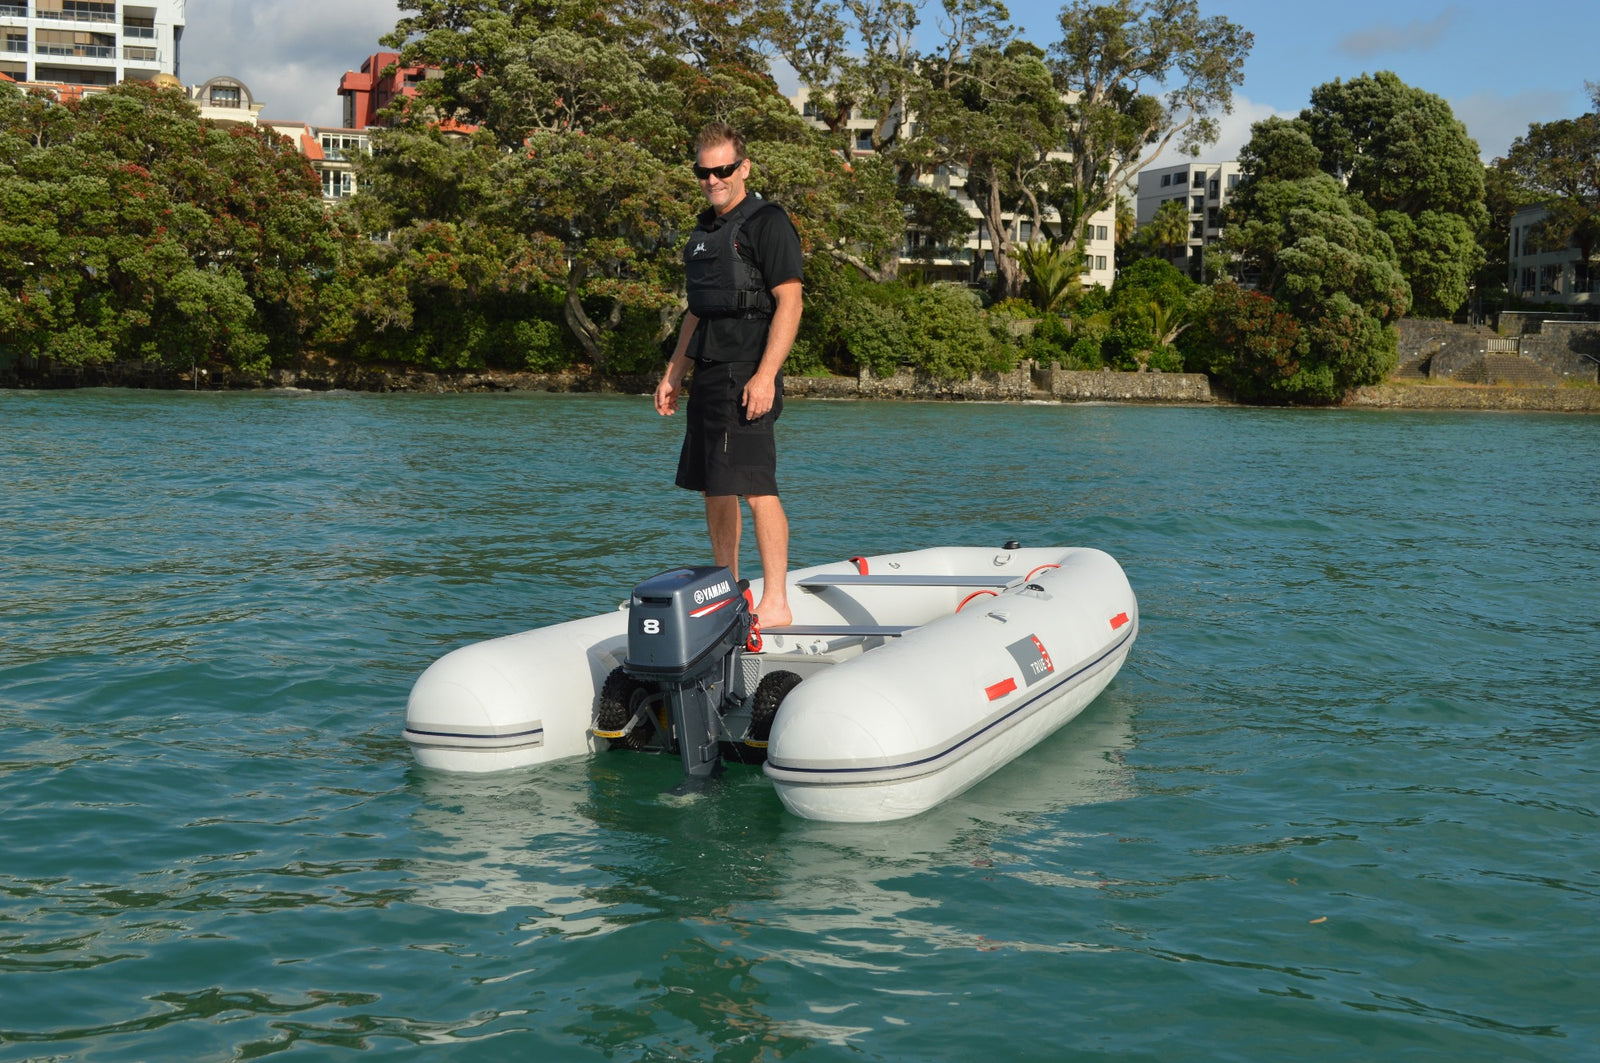 Stand up stability in True Kit folding boats